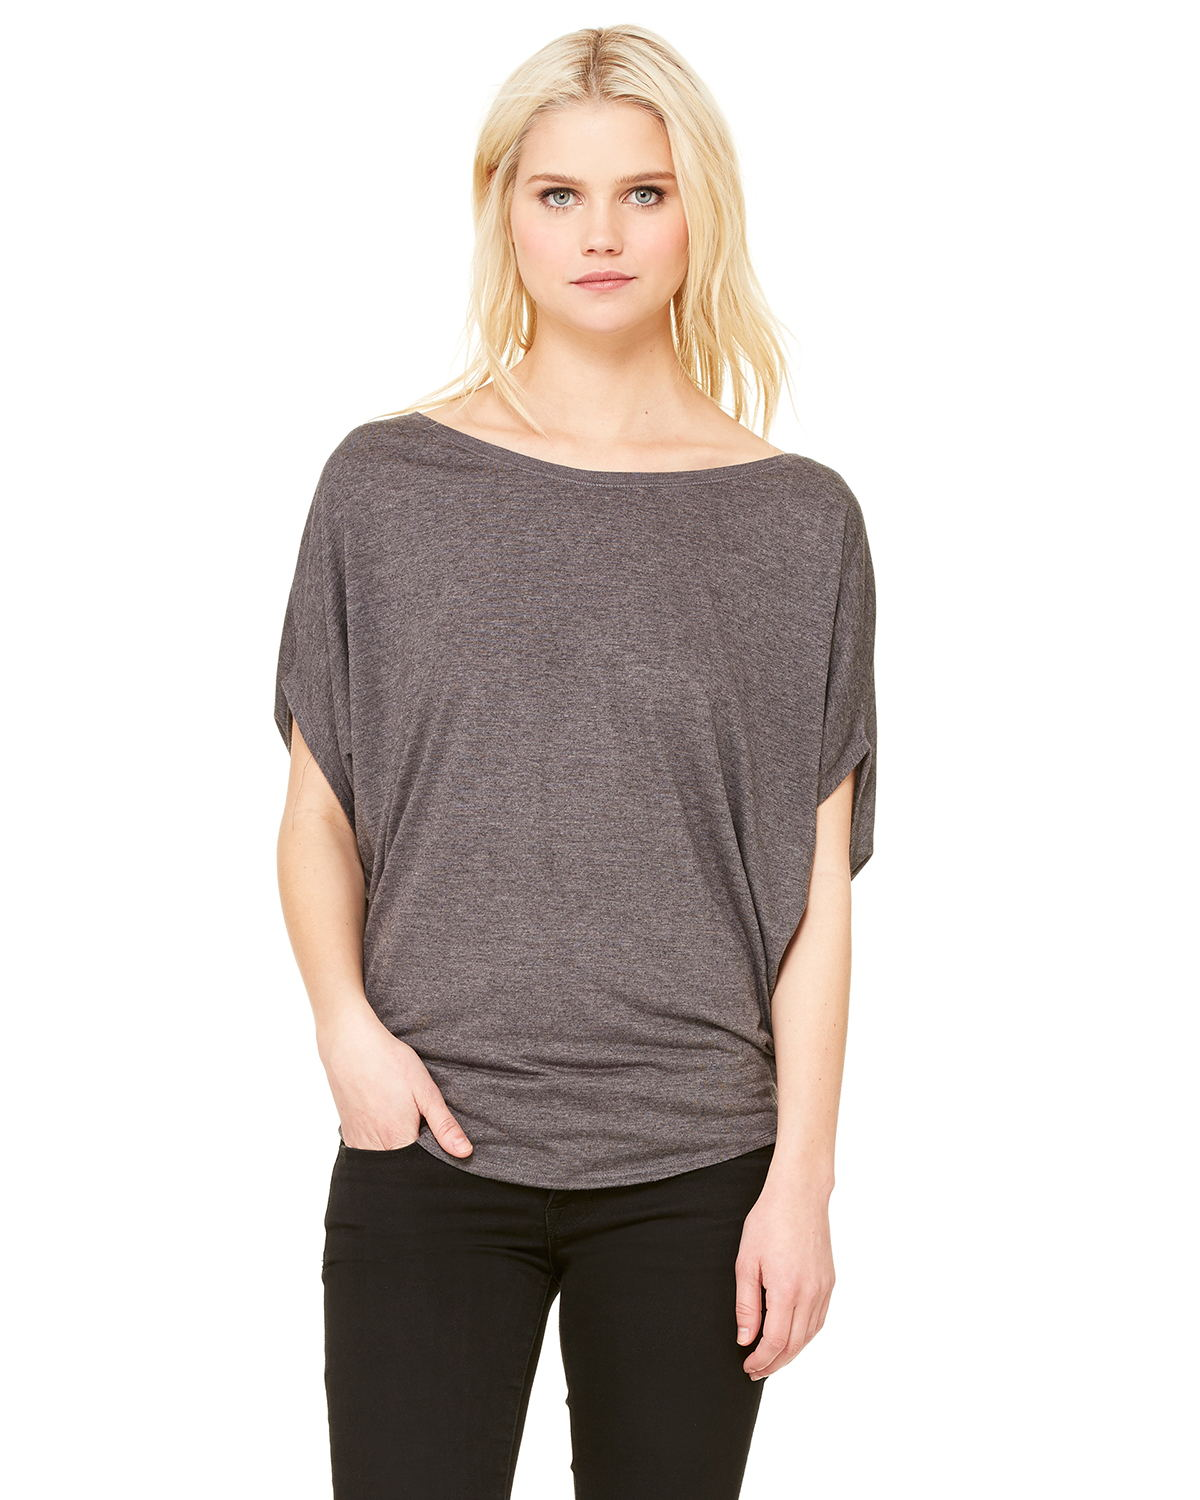 Canvas B8806 - Ladies' Flowy Circle Top